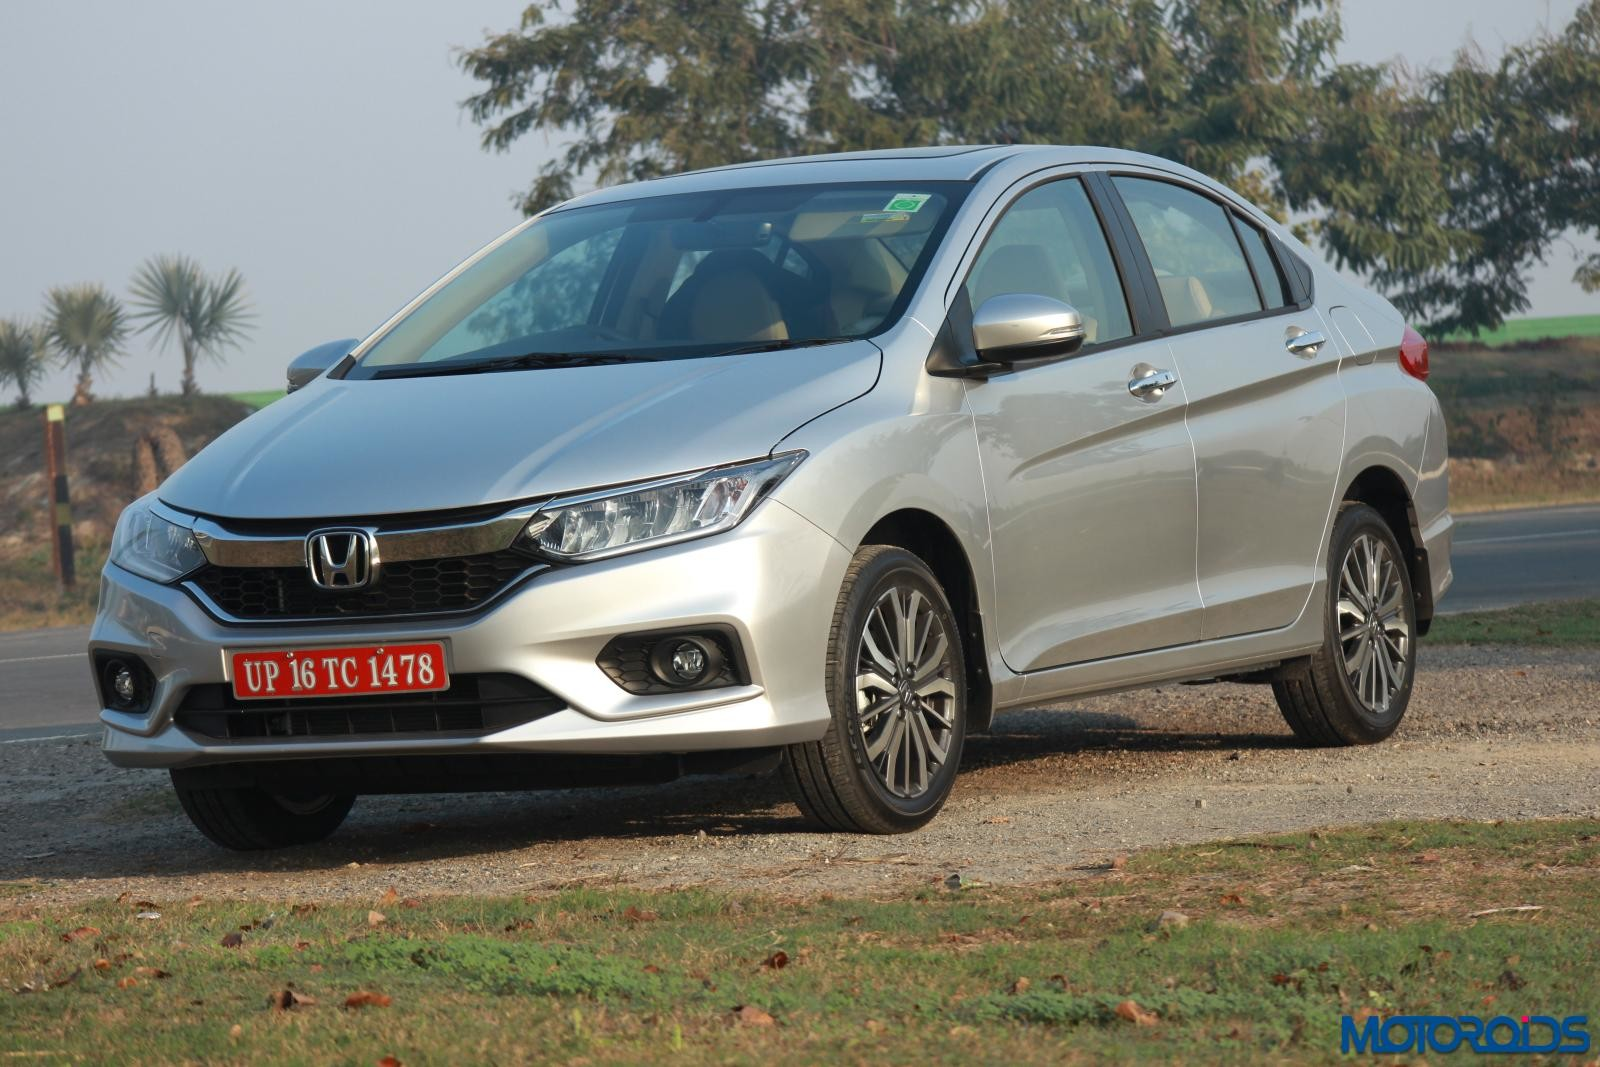 February 16, 2017-2017-Honda-City-Review-4.jpg